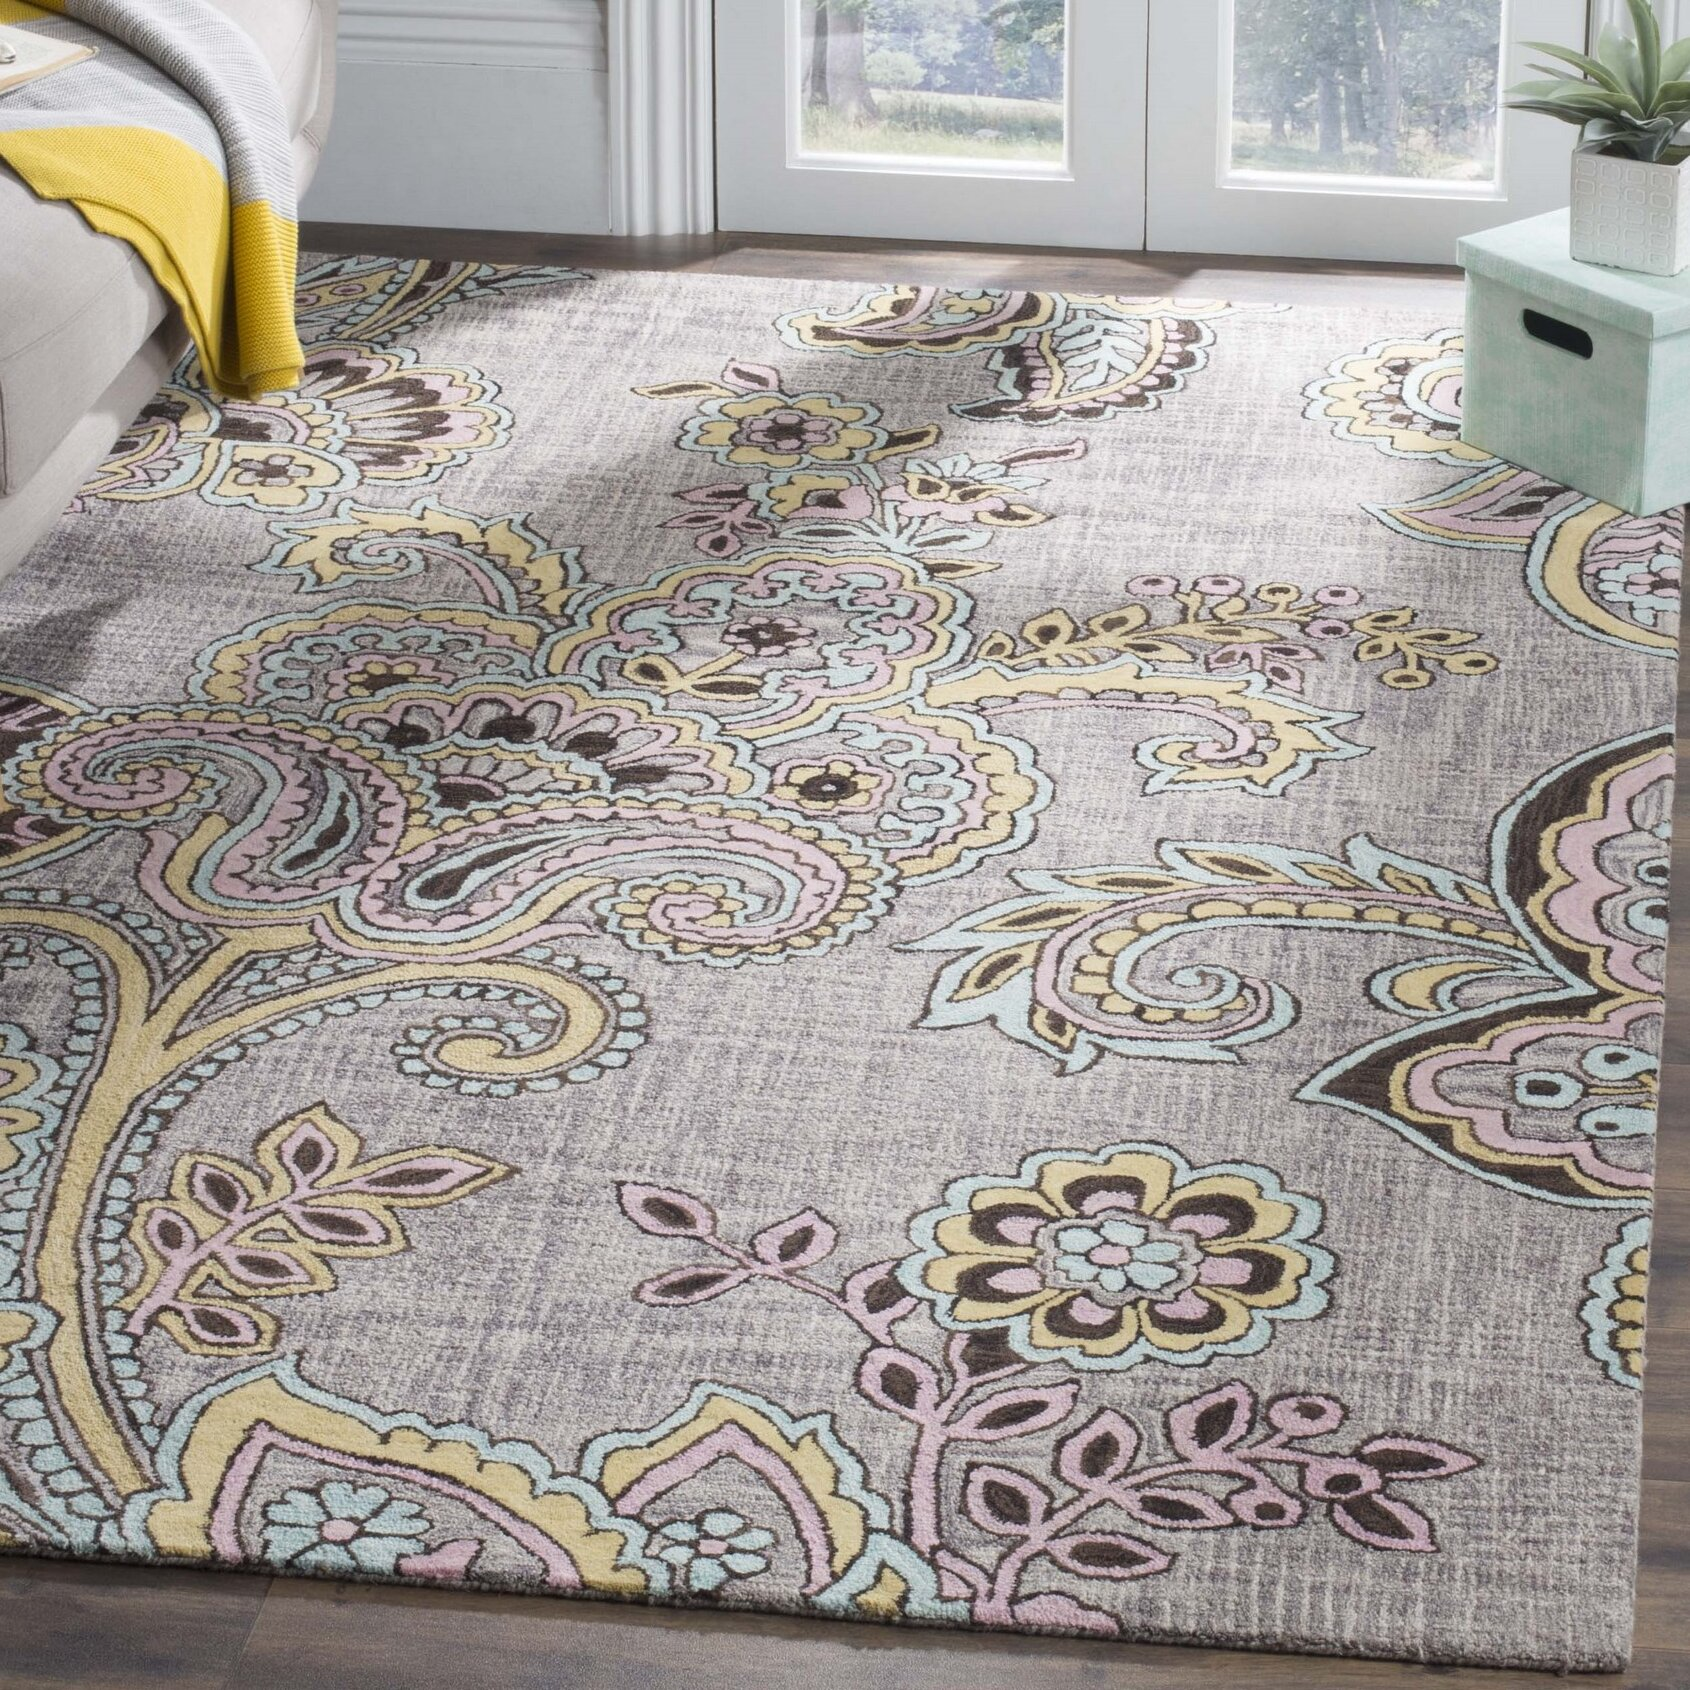 Modern Contemporary Paisley Area Rugs You Ll Love In 2021 Wayfair